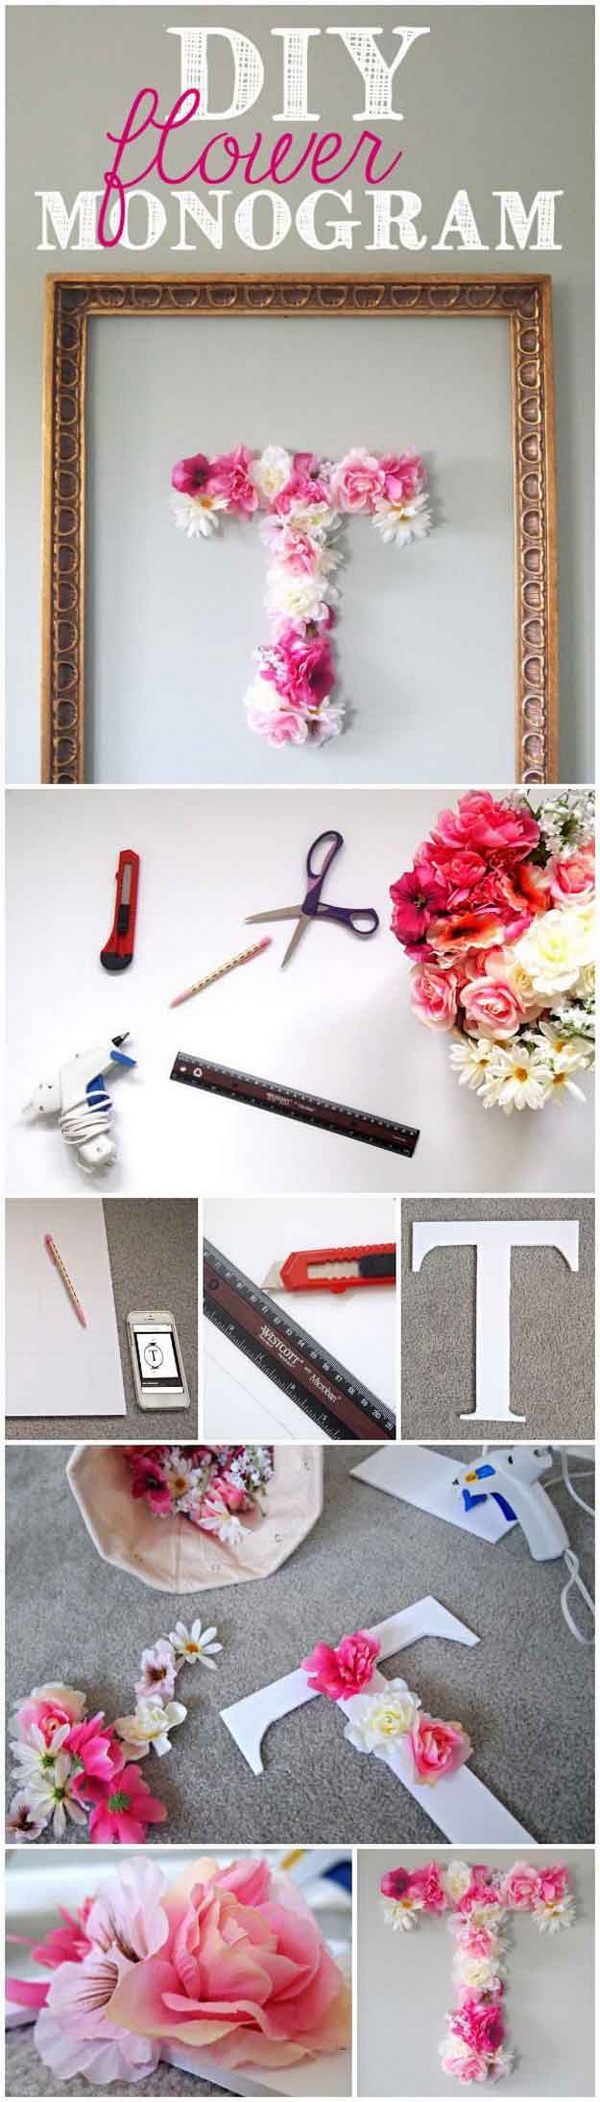 Monogram Wall Decor Diy : Stunning diy wall art ideas tutorials for creative